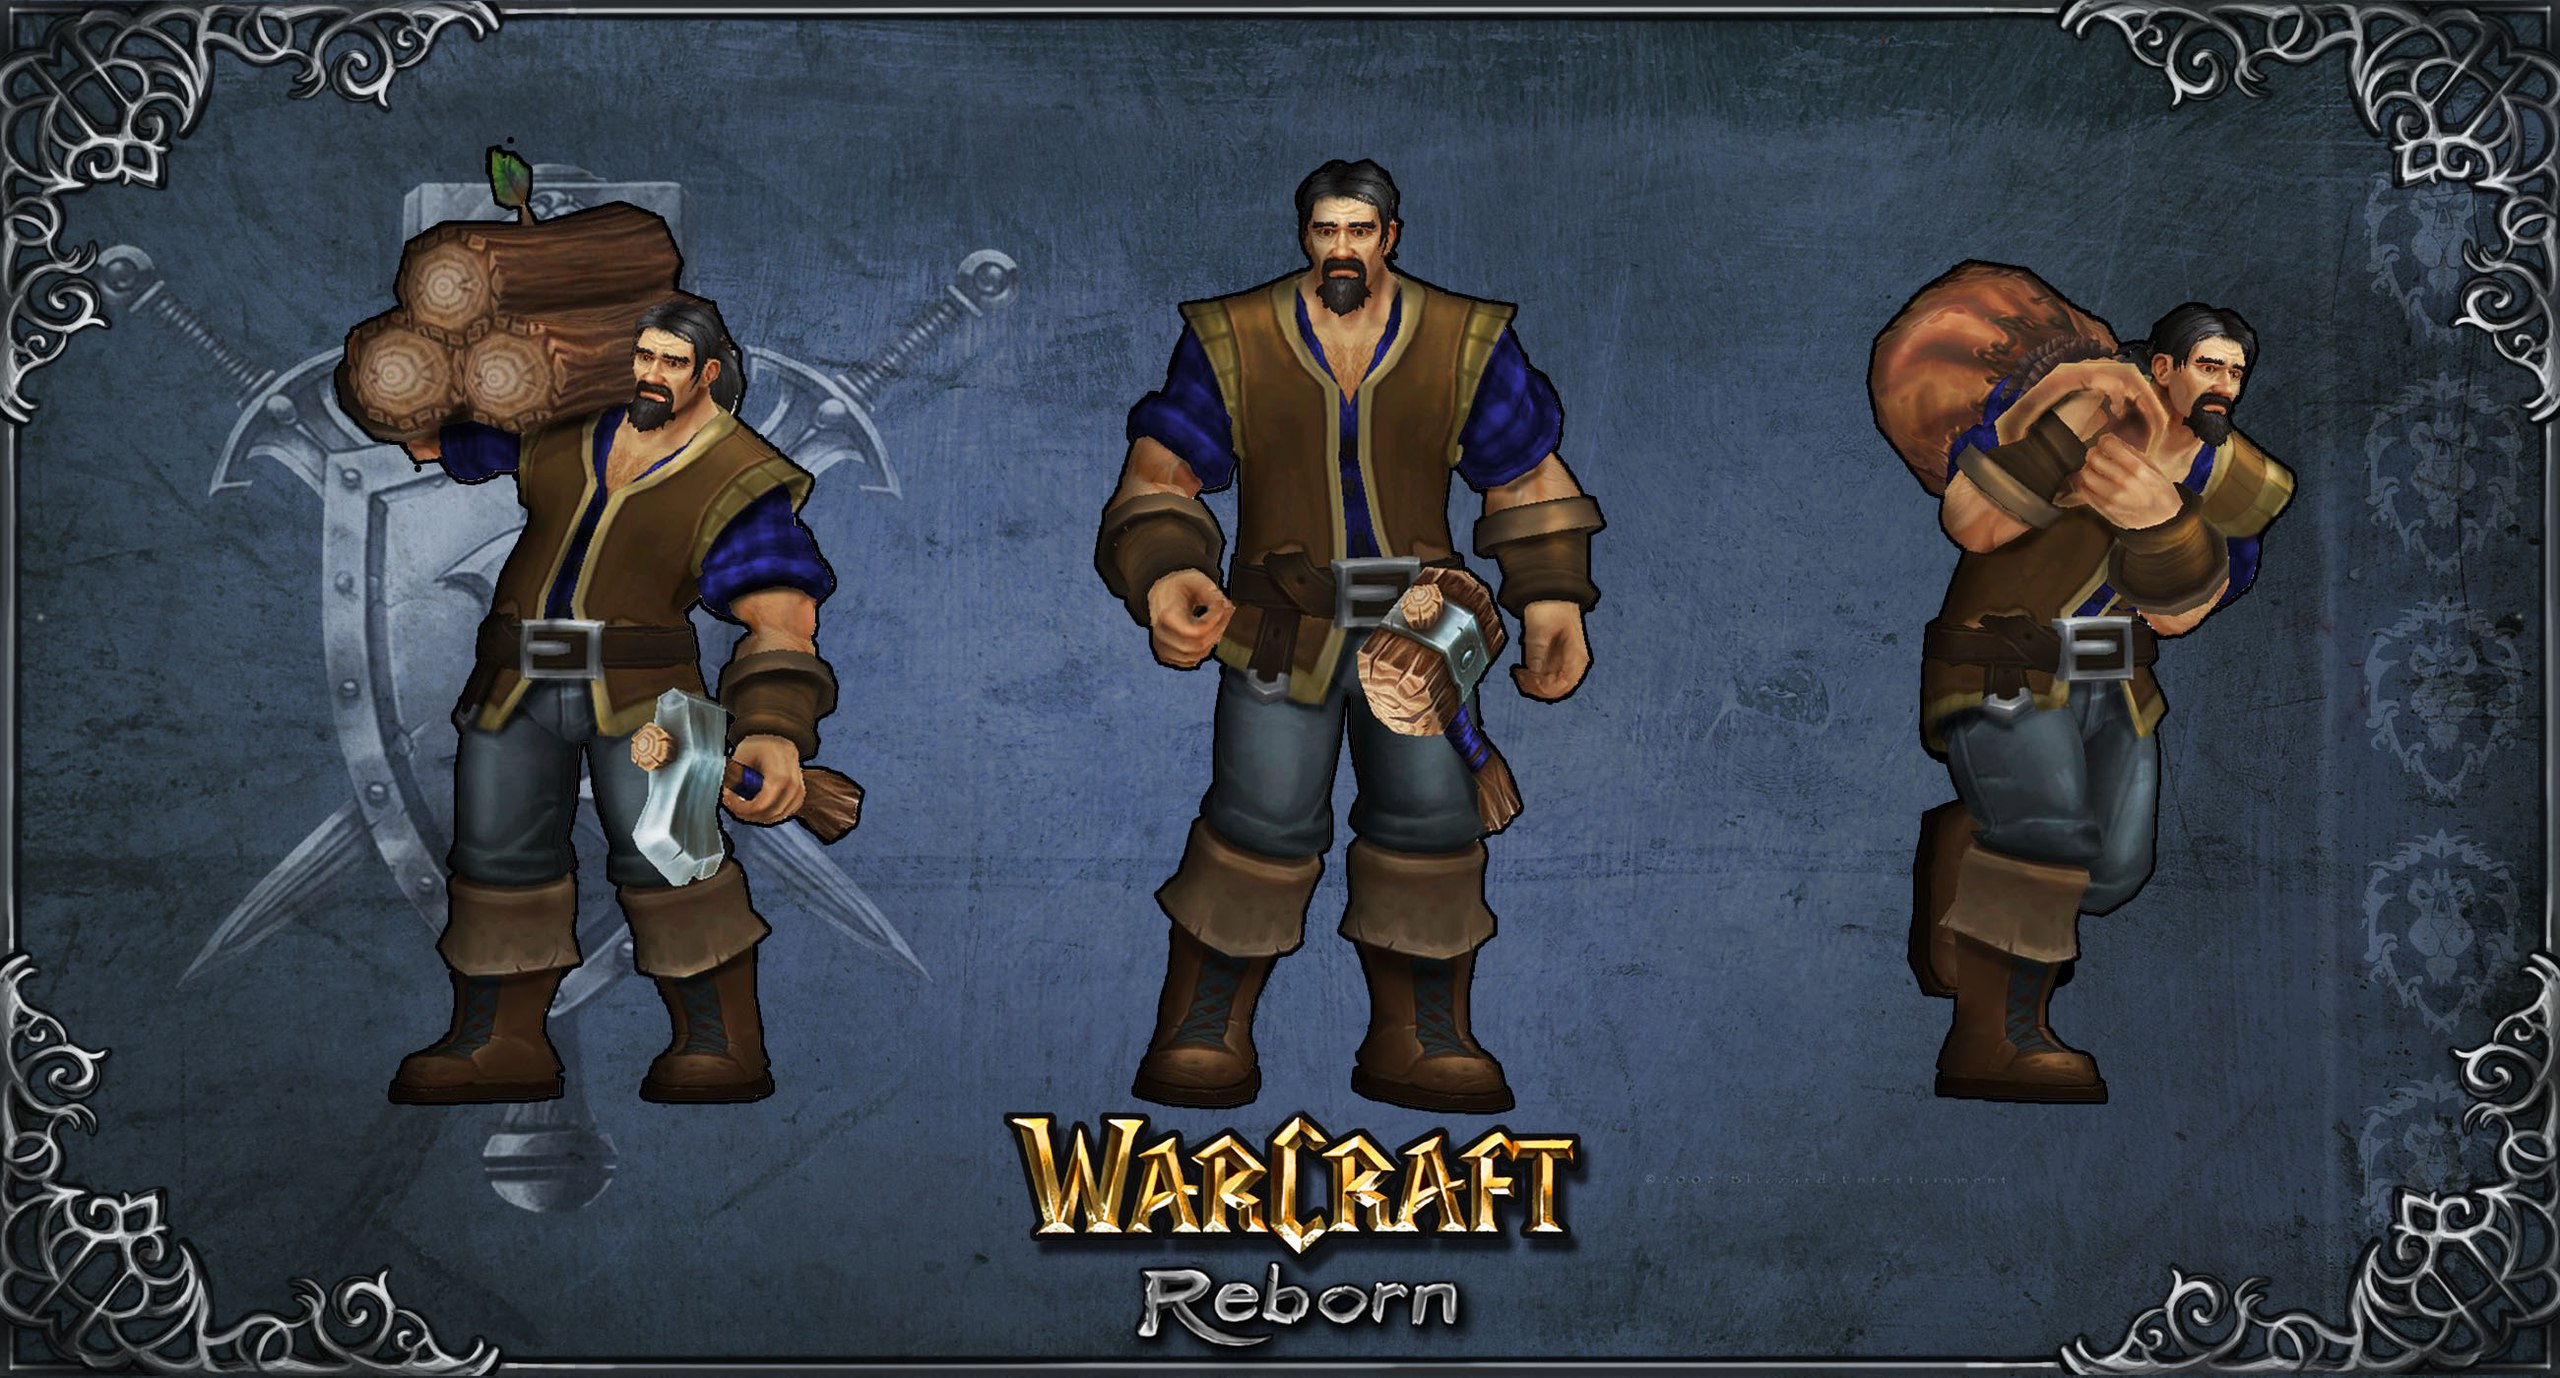 Peasant Image Warcraft 3 Reborn Mod For Warcraft Iii Frozen